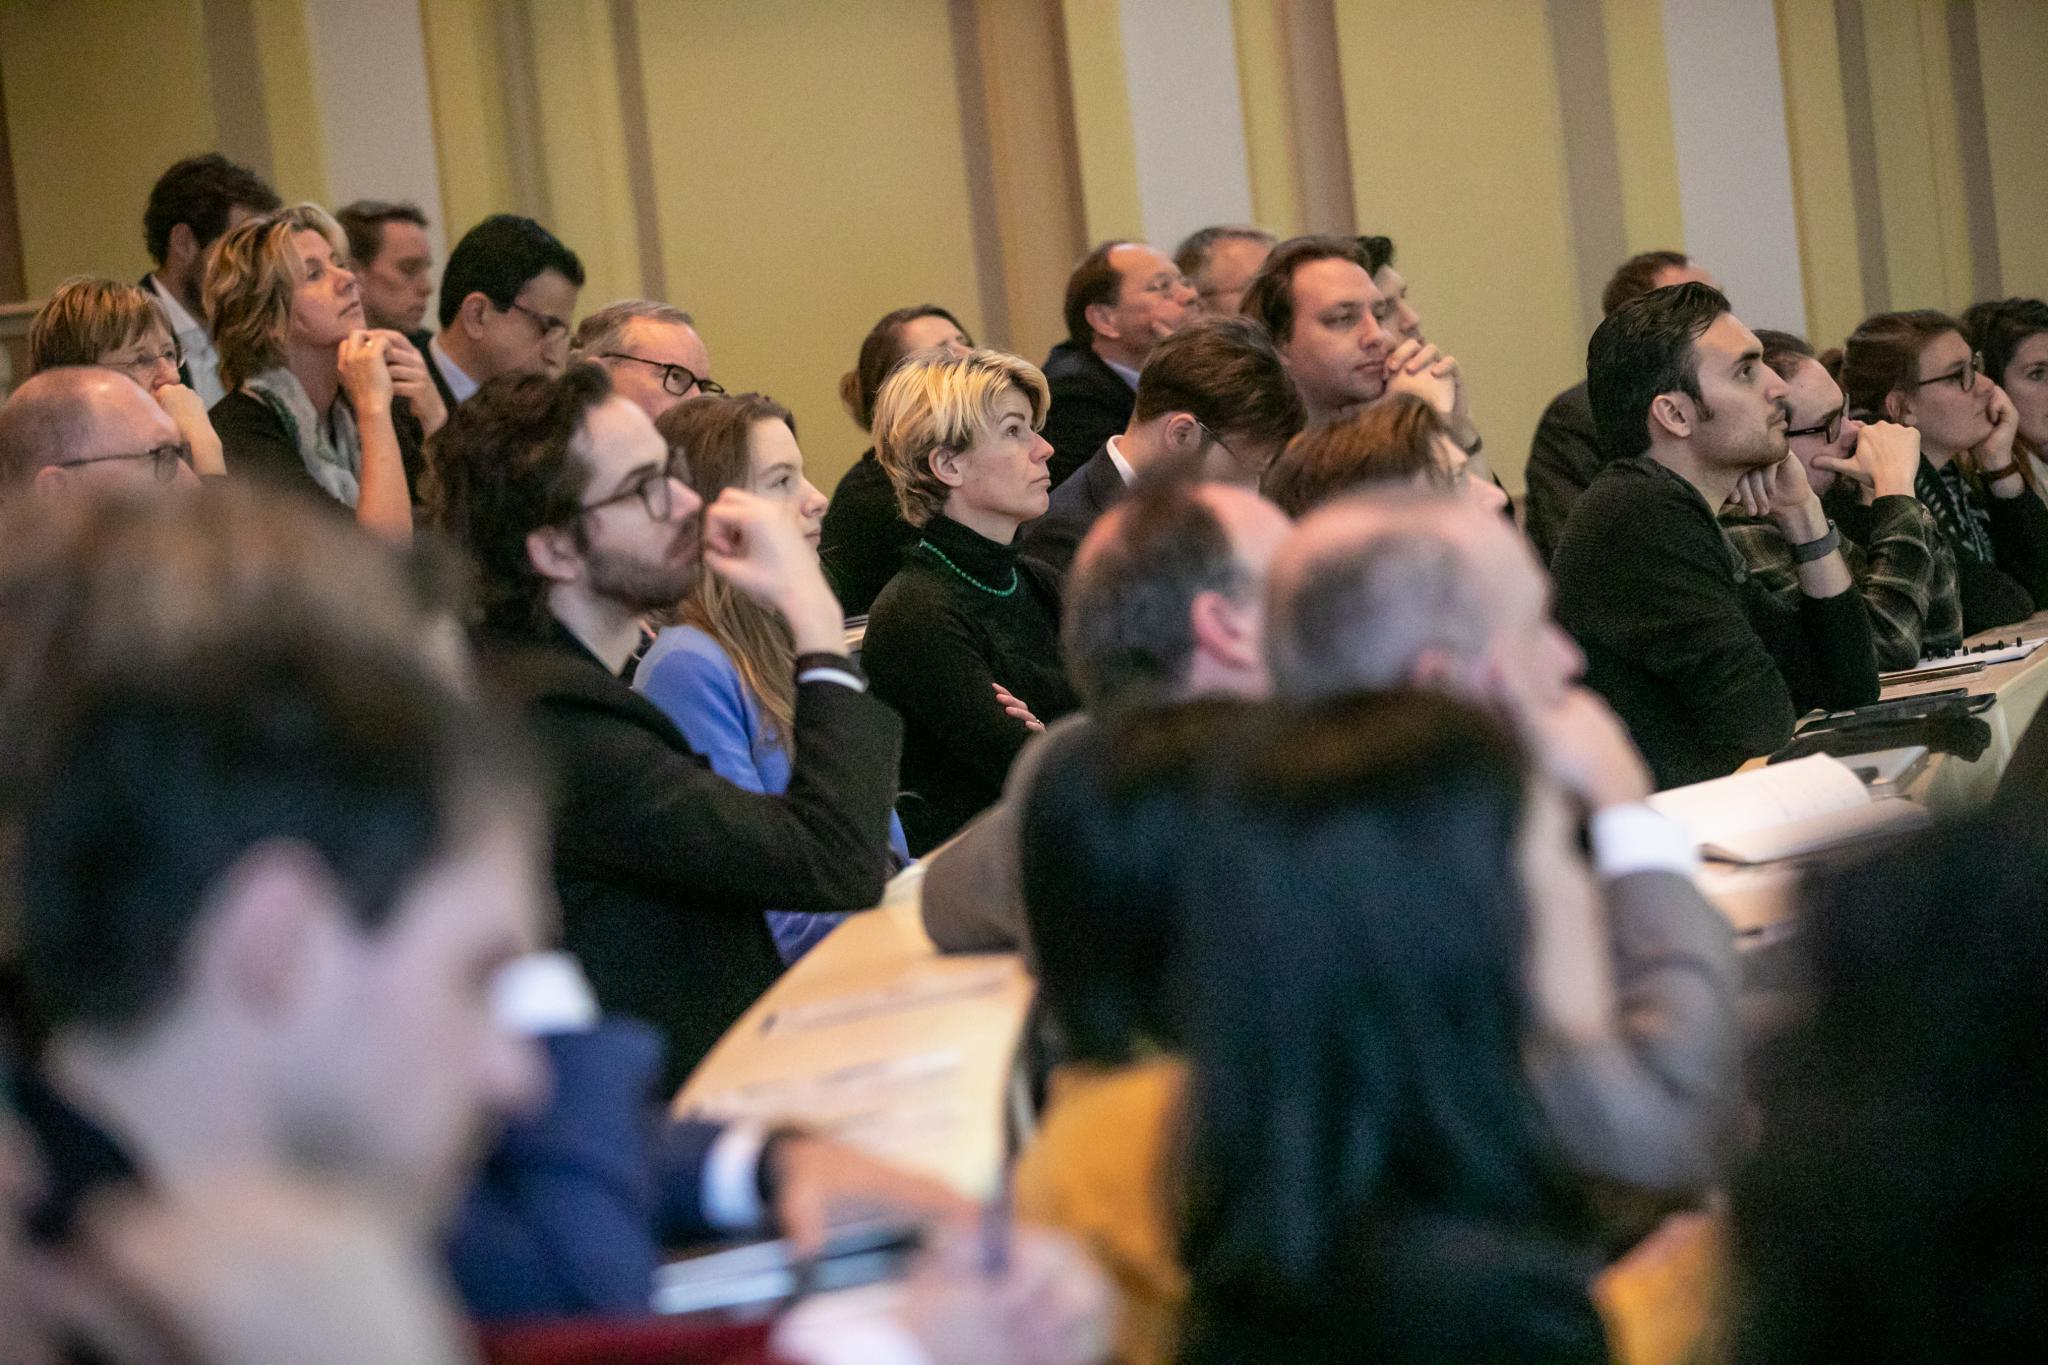 Audience at BOLD Cities kick-off, listening to Peter Swire.